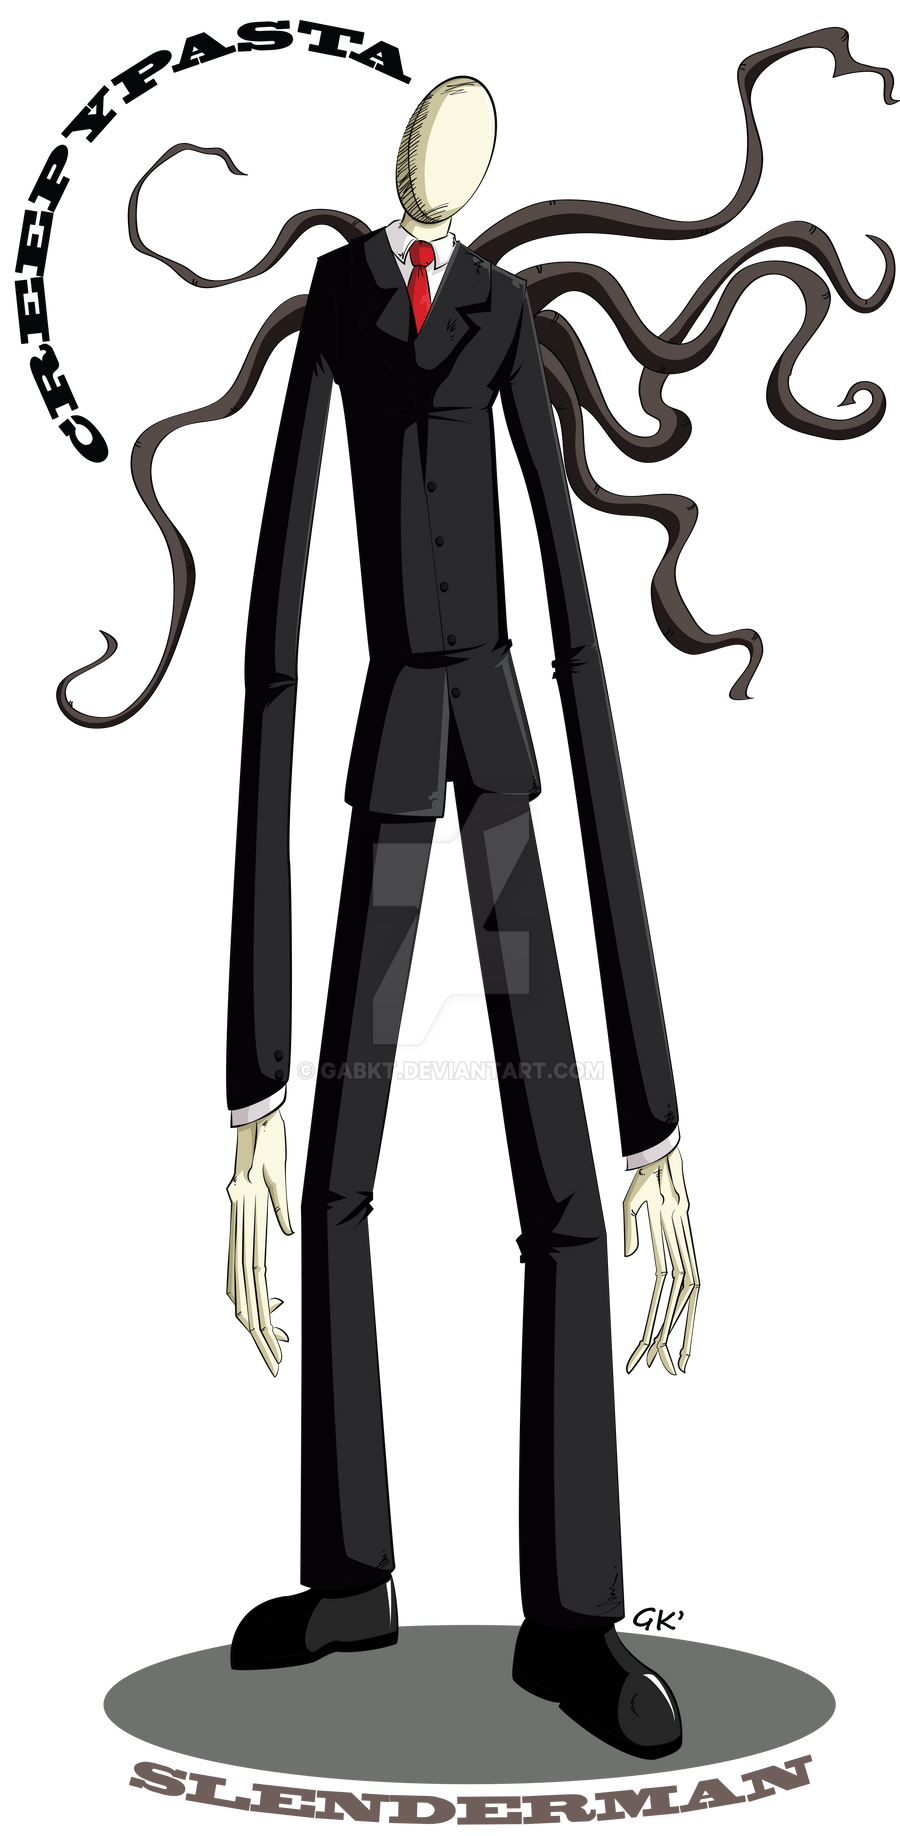 Creepypasta: Slenderman by GabKT on DeviantArt